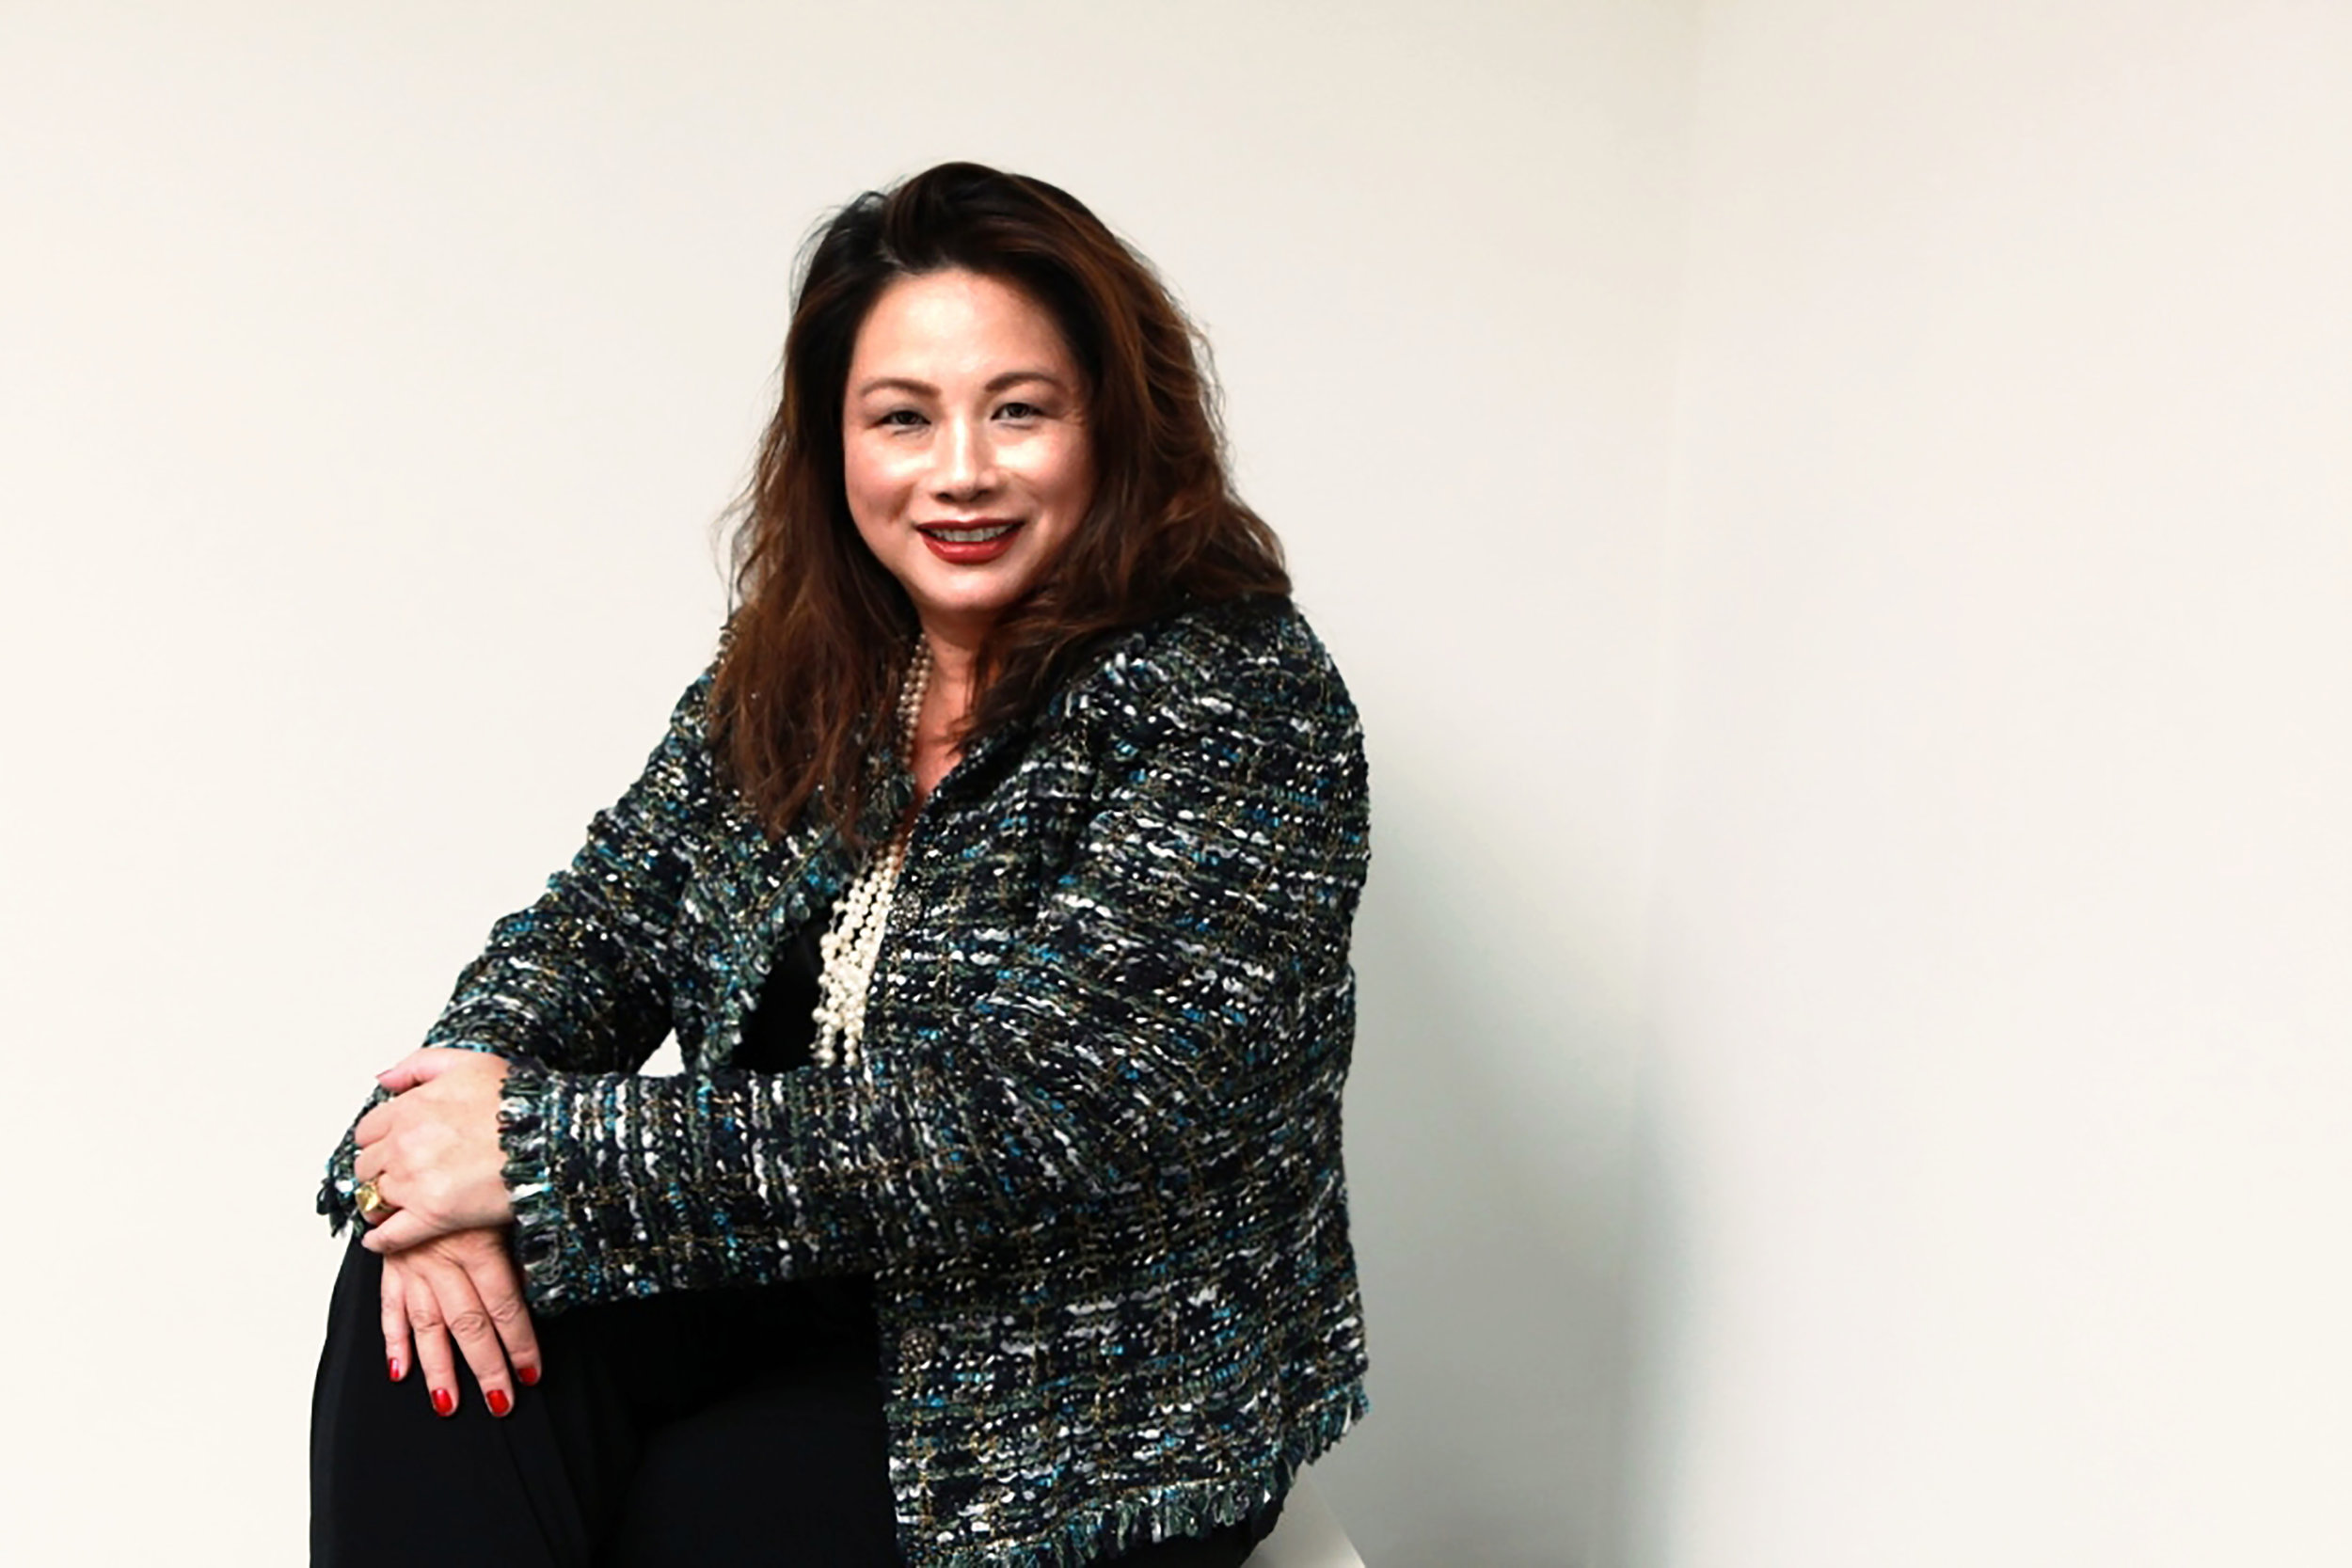 Questions & Answers - With Wendy Chang